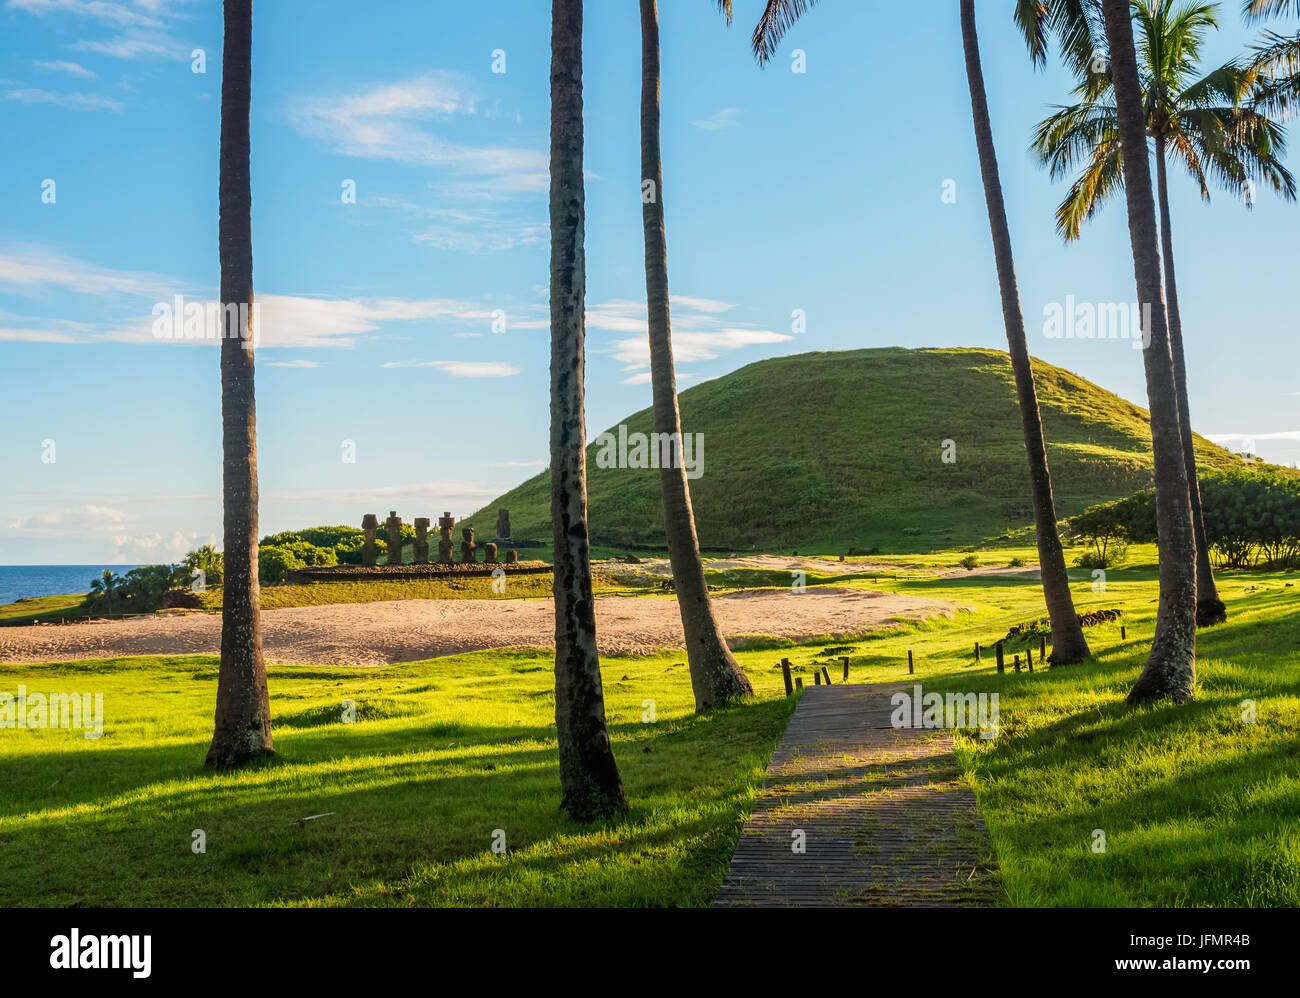 Anakena Beach, Easter Island, Chile - Stock Image